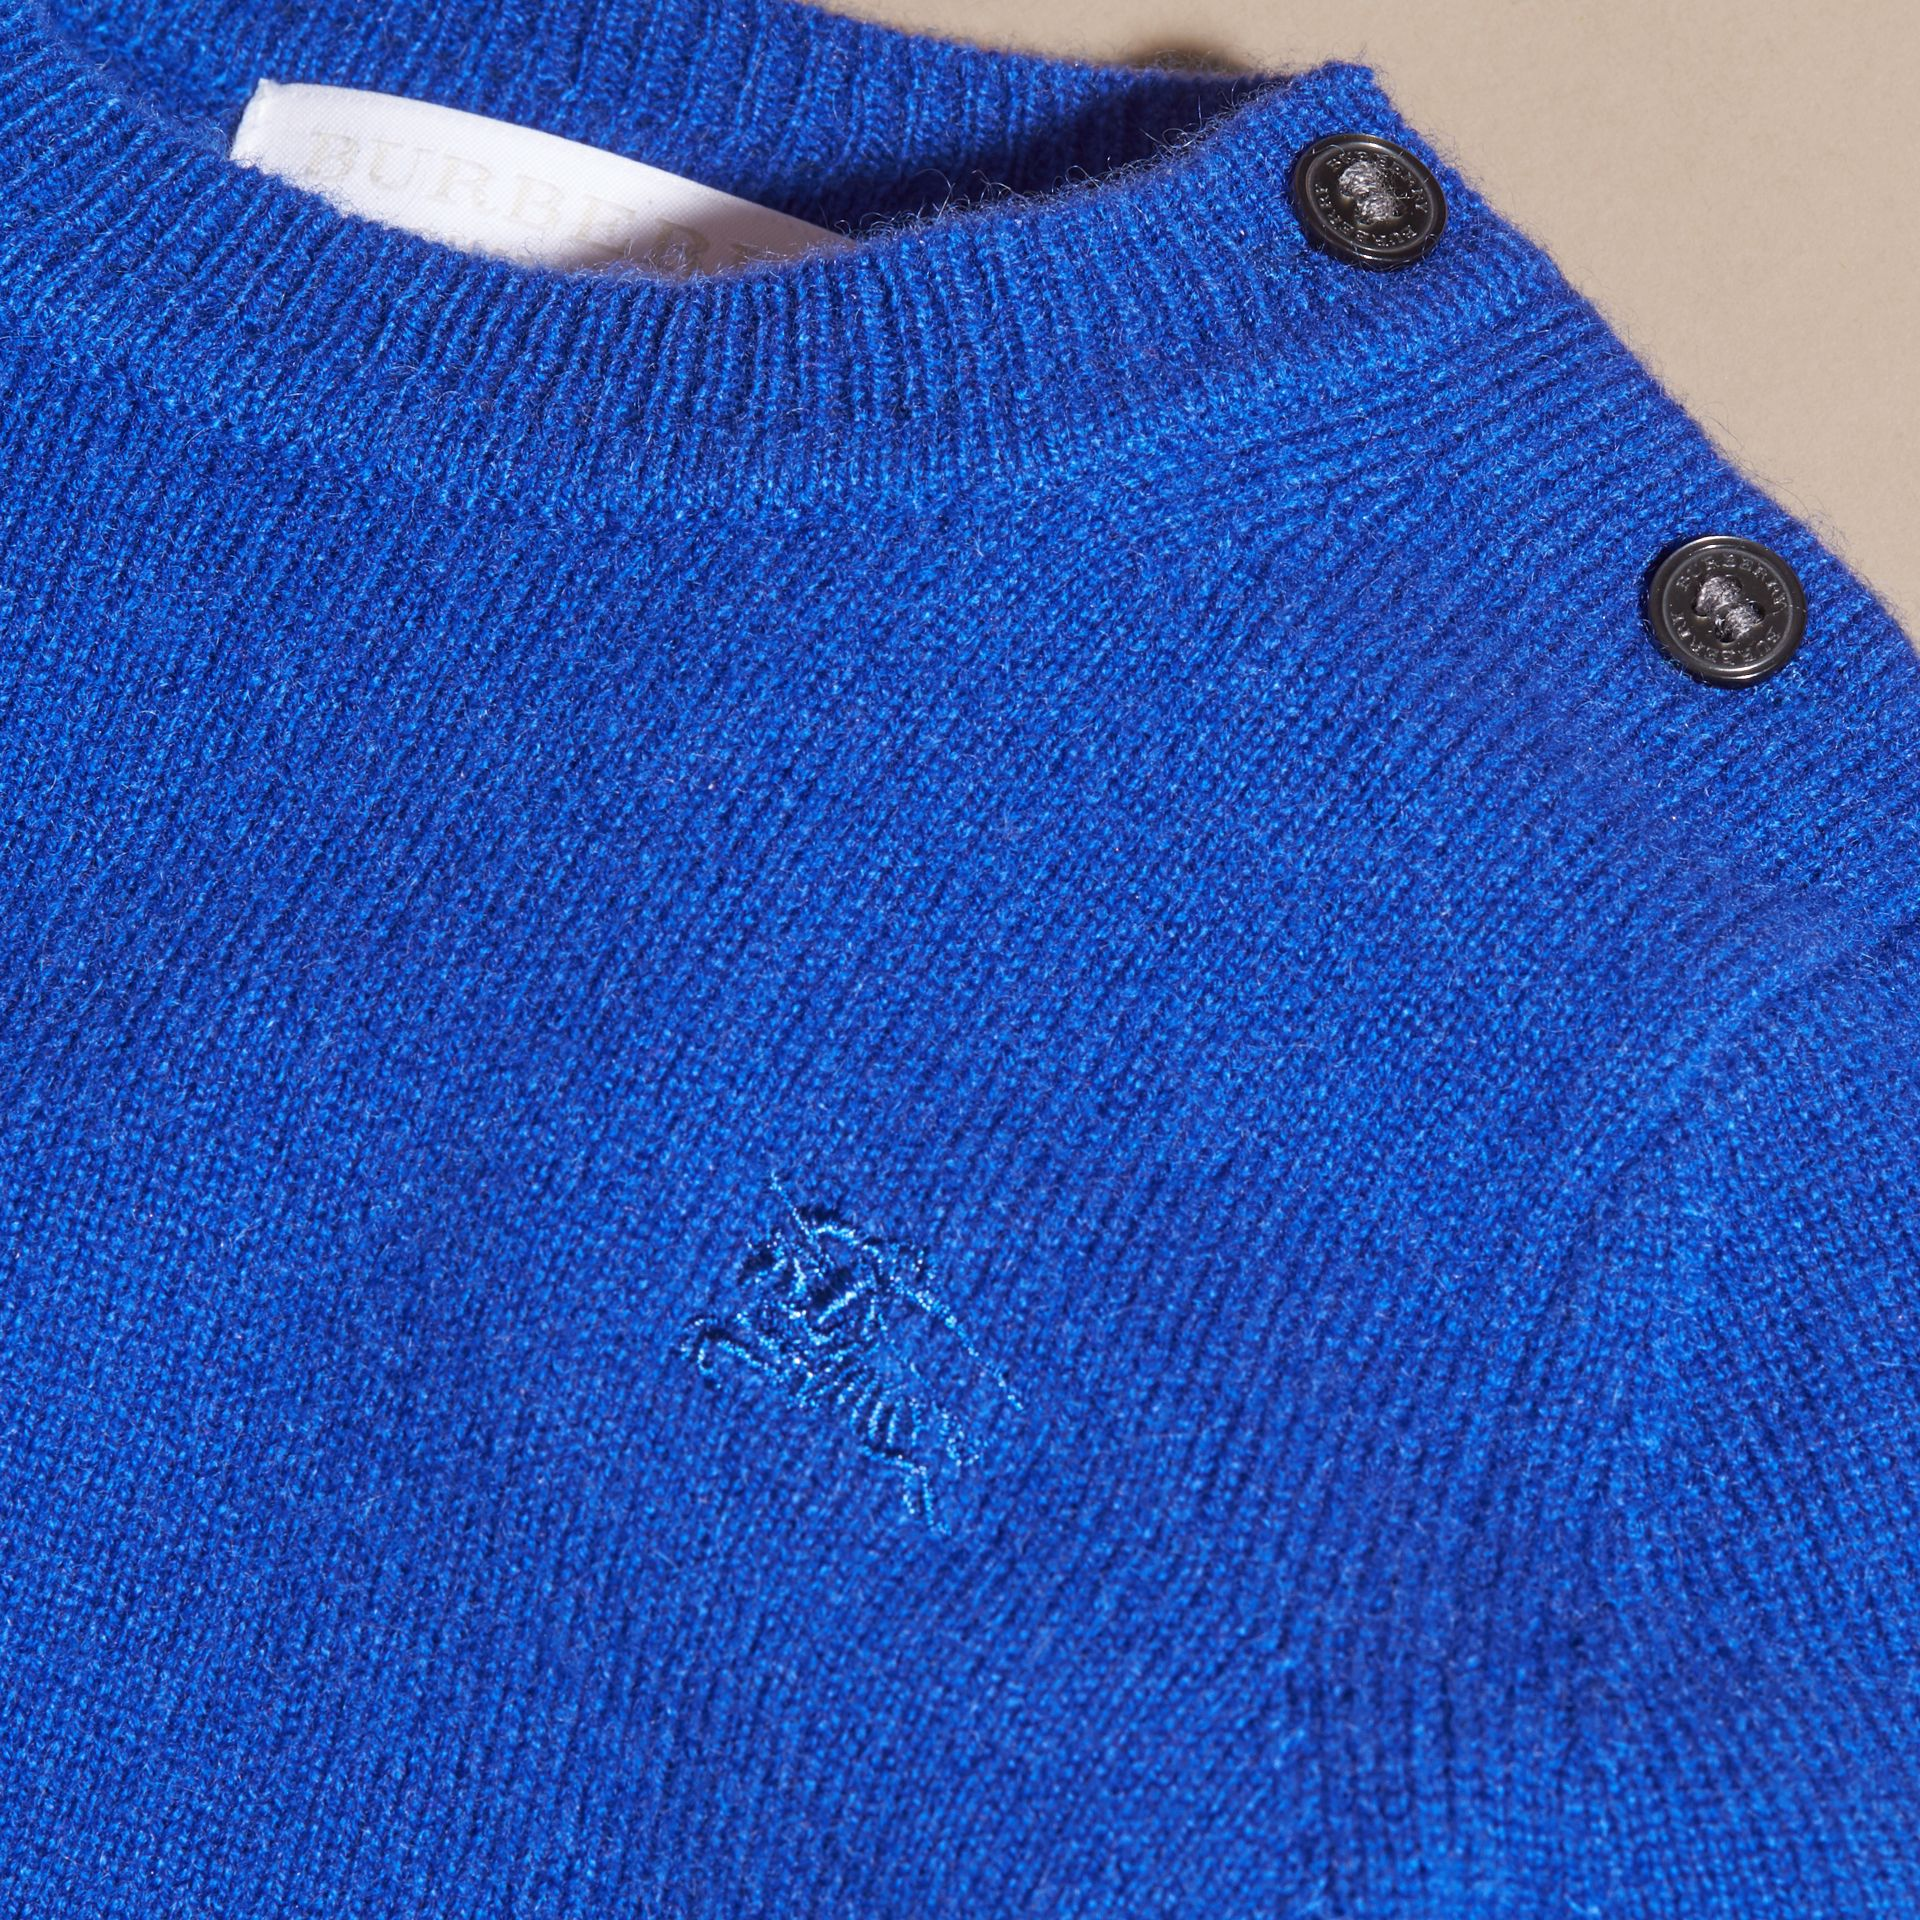 Brilliant blue Check Detail Cashmere Sweater Brilliant Blue - gallery image 2